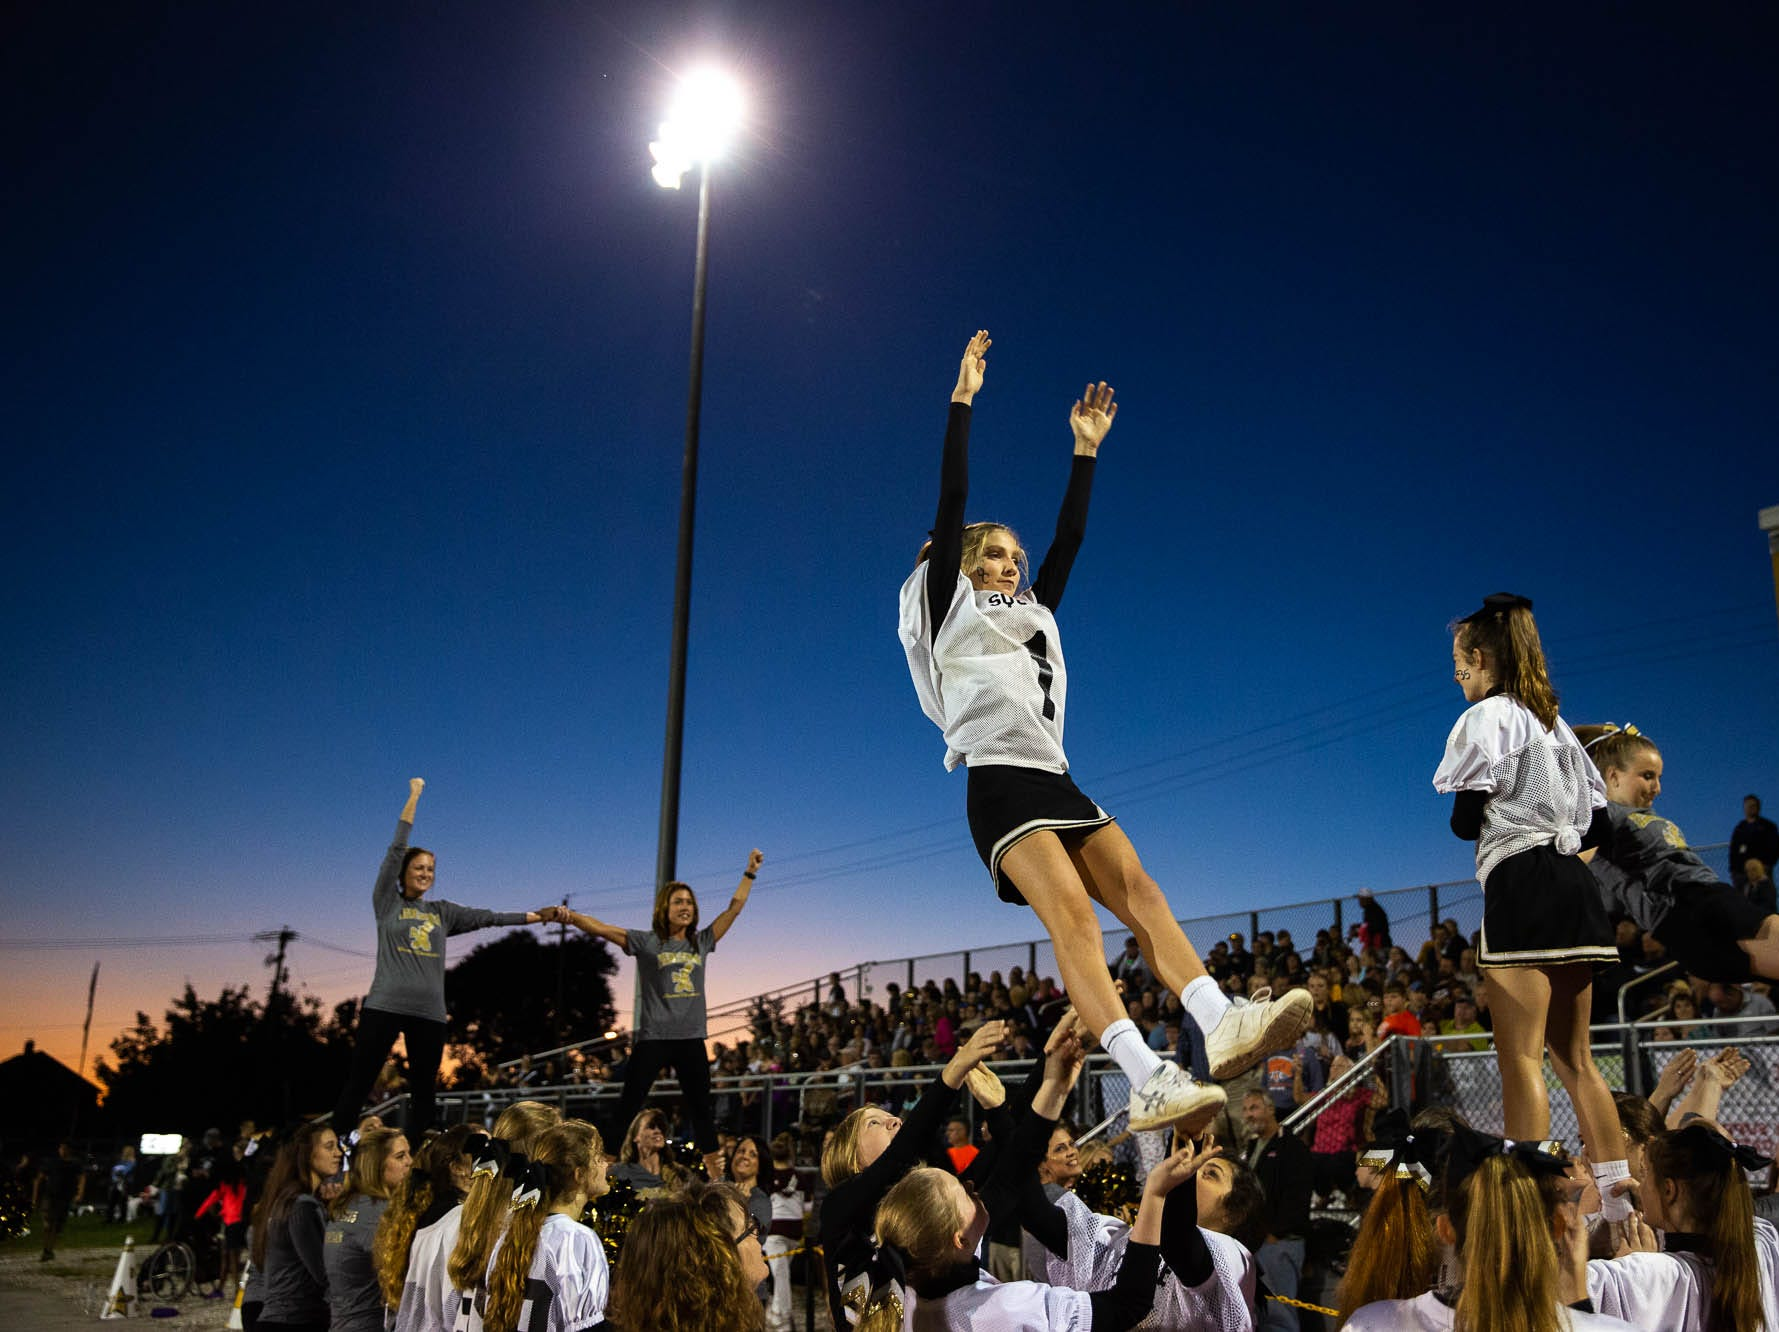 Delone Catholic cheerleaders cheer during the first half of a football game between Delone Catholic and Biglerville, Friday, Sept. 28, 2018, in McSherrystown. Delone led Biglerville 35-0 at the half.